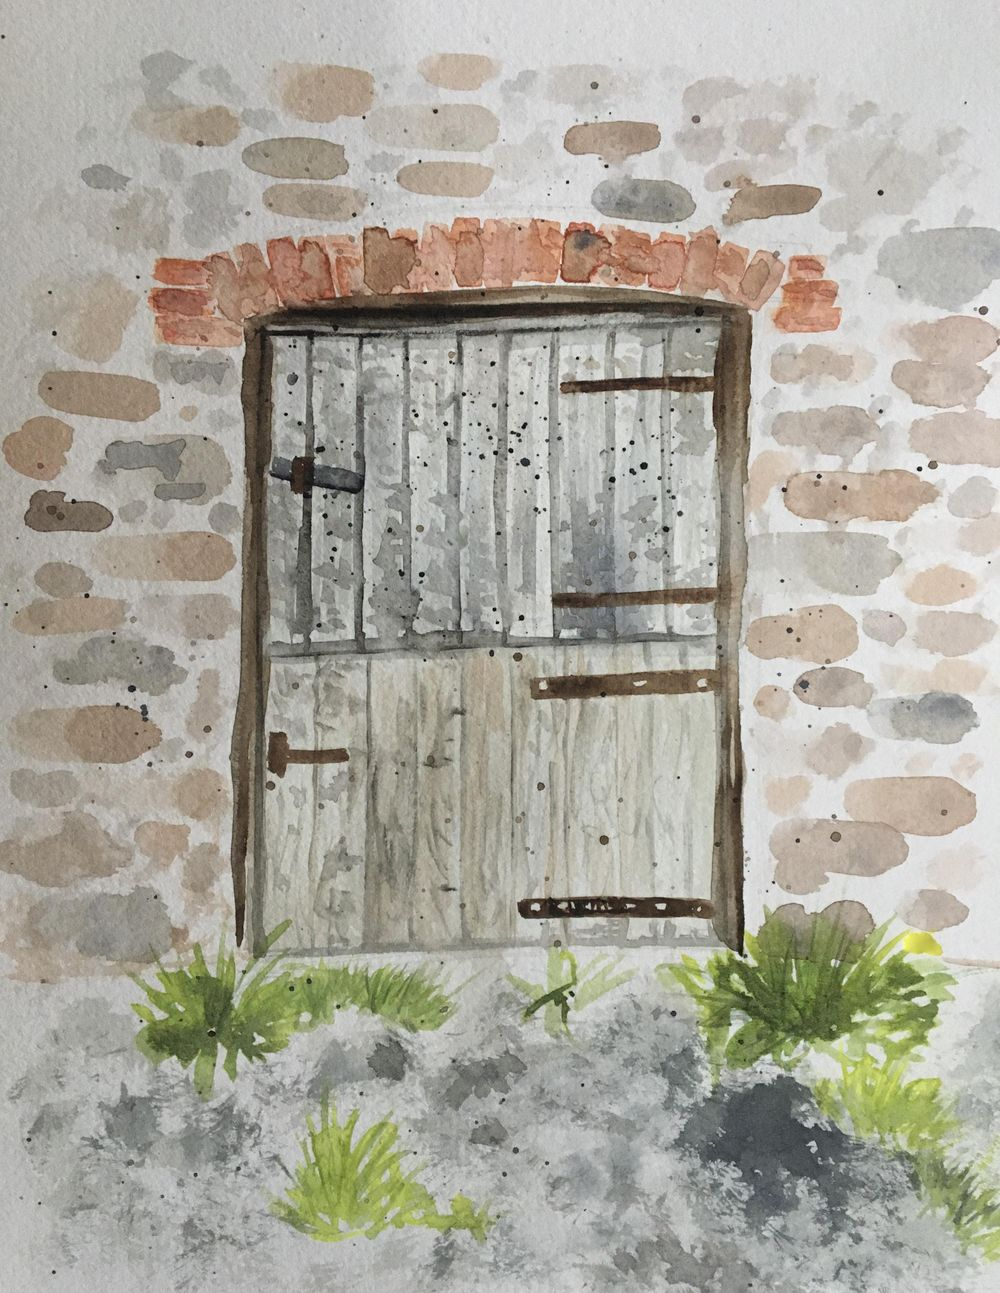 14 day watercolours challenge - image 1 - student project